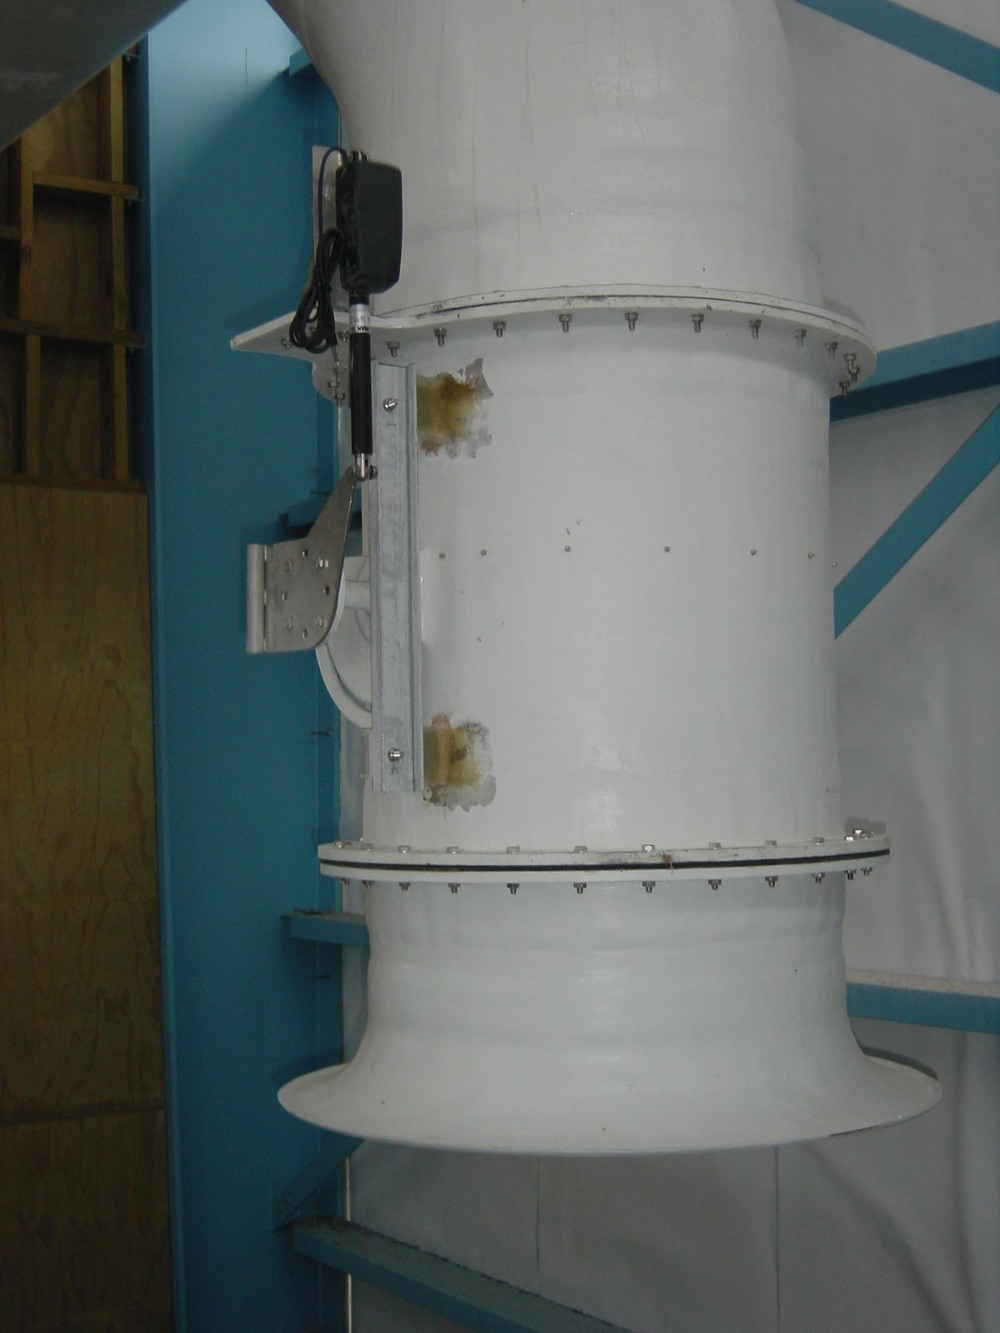 MWS Damper Actuated 2.jpg